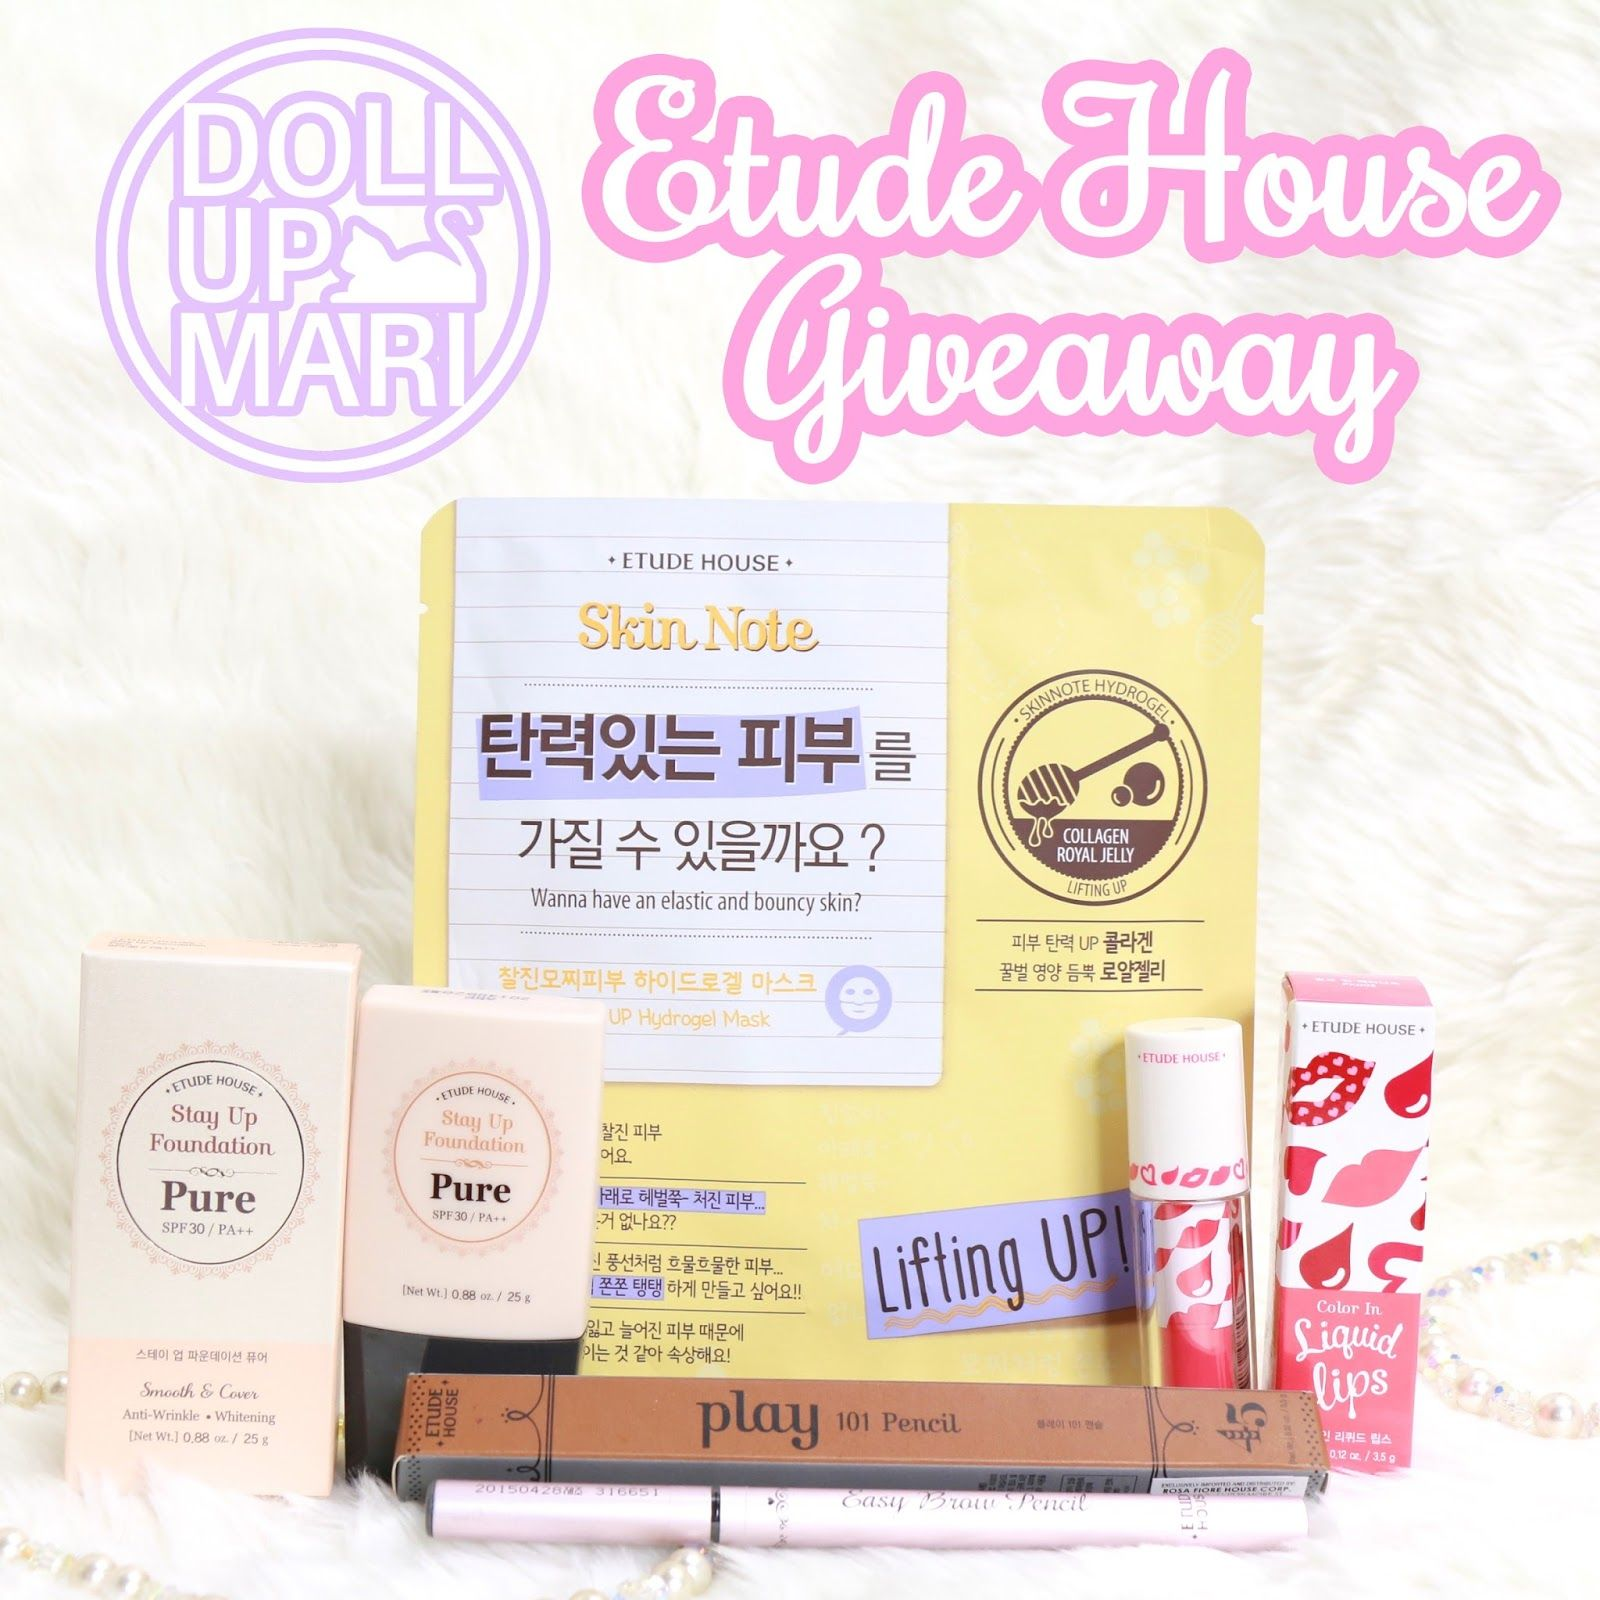 Etude House 500k Facebook Giveaway As My Way Of Saying Thanks For Itunes Add Funds 500 Thousand Page Views